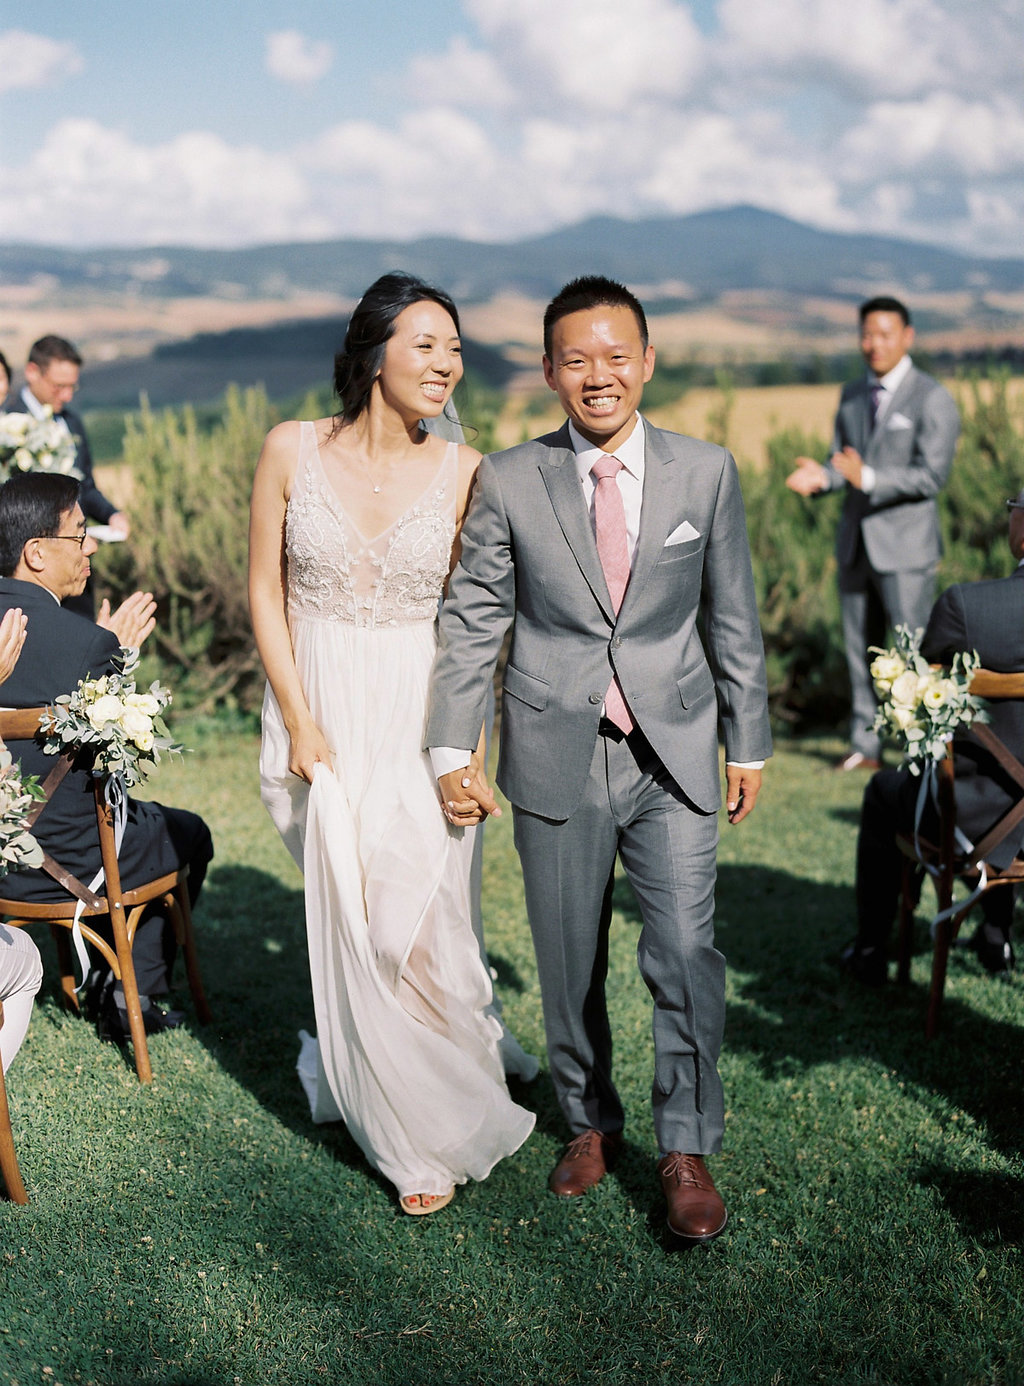 ceremony recessionals - photo by Katie Grant Photography http://ruffledblog.com/classically-beautiful-intimate-wedding-in-tuscany